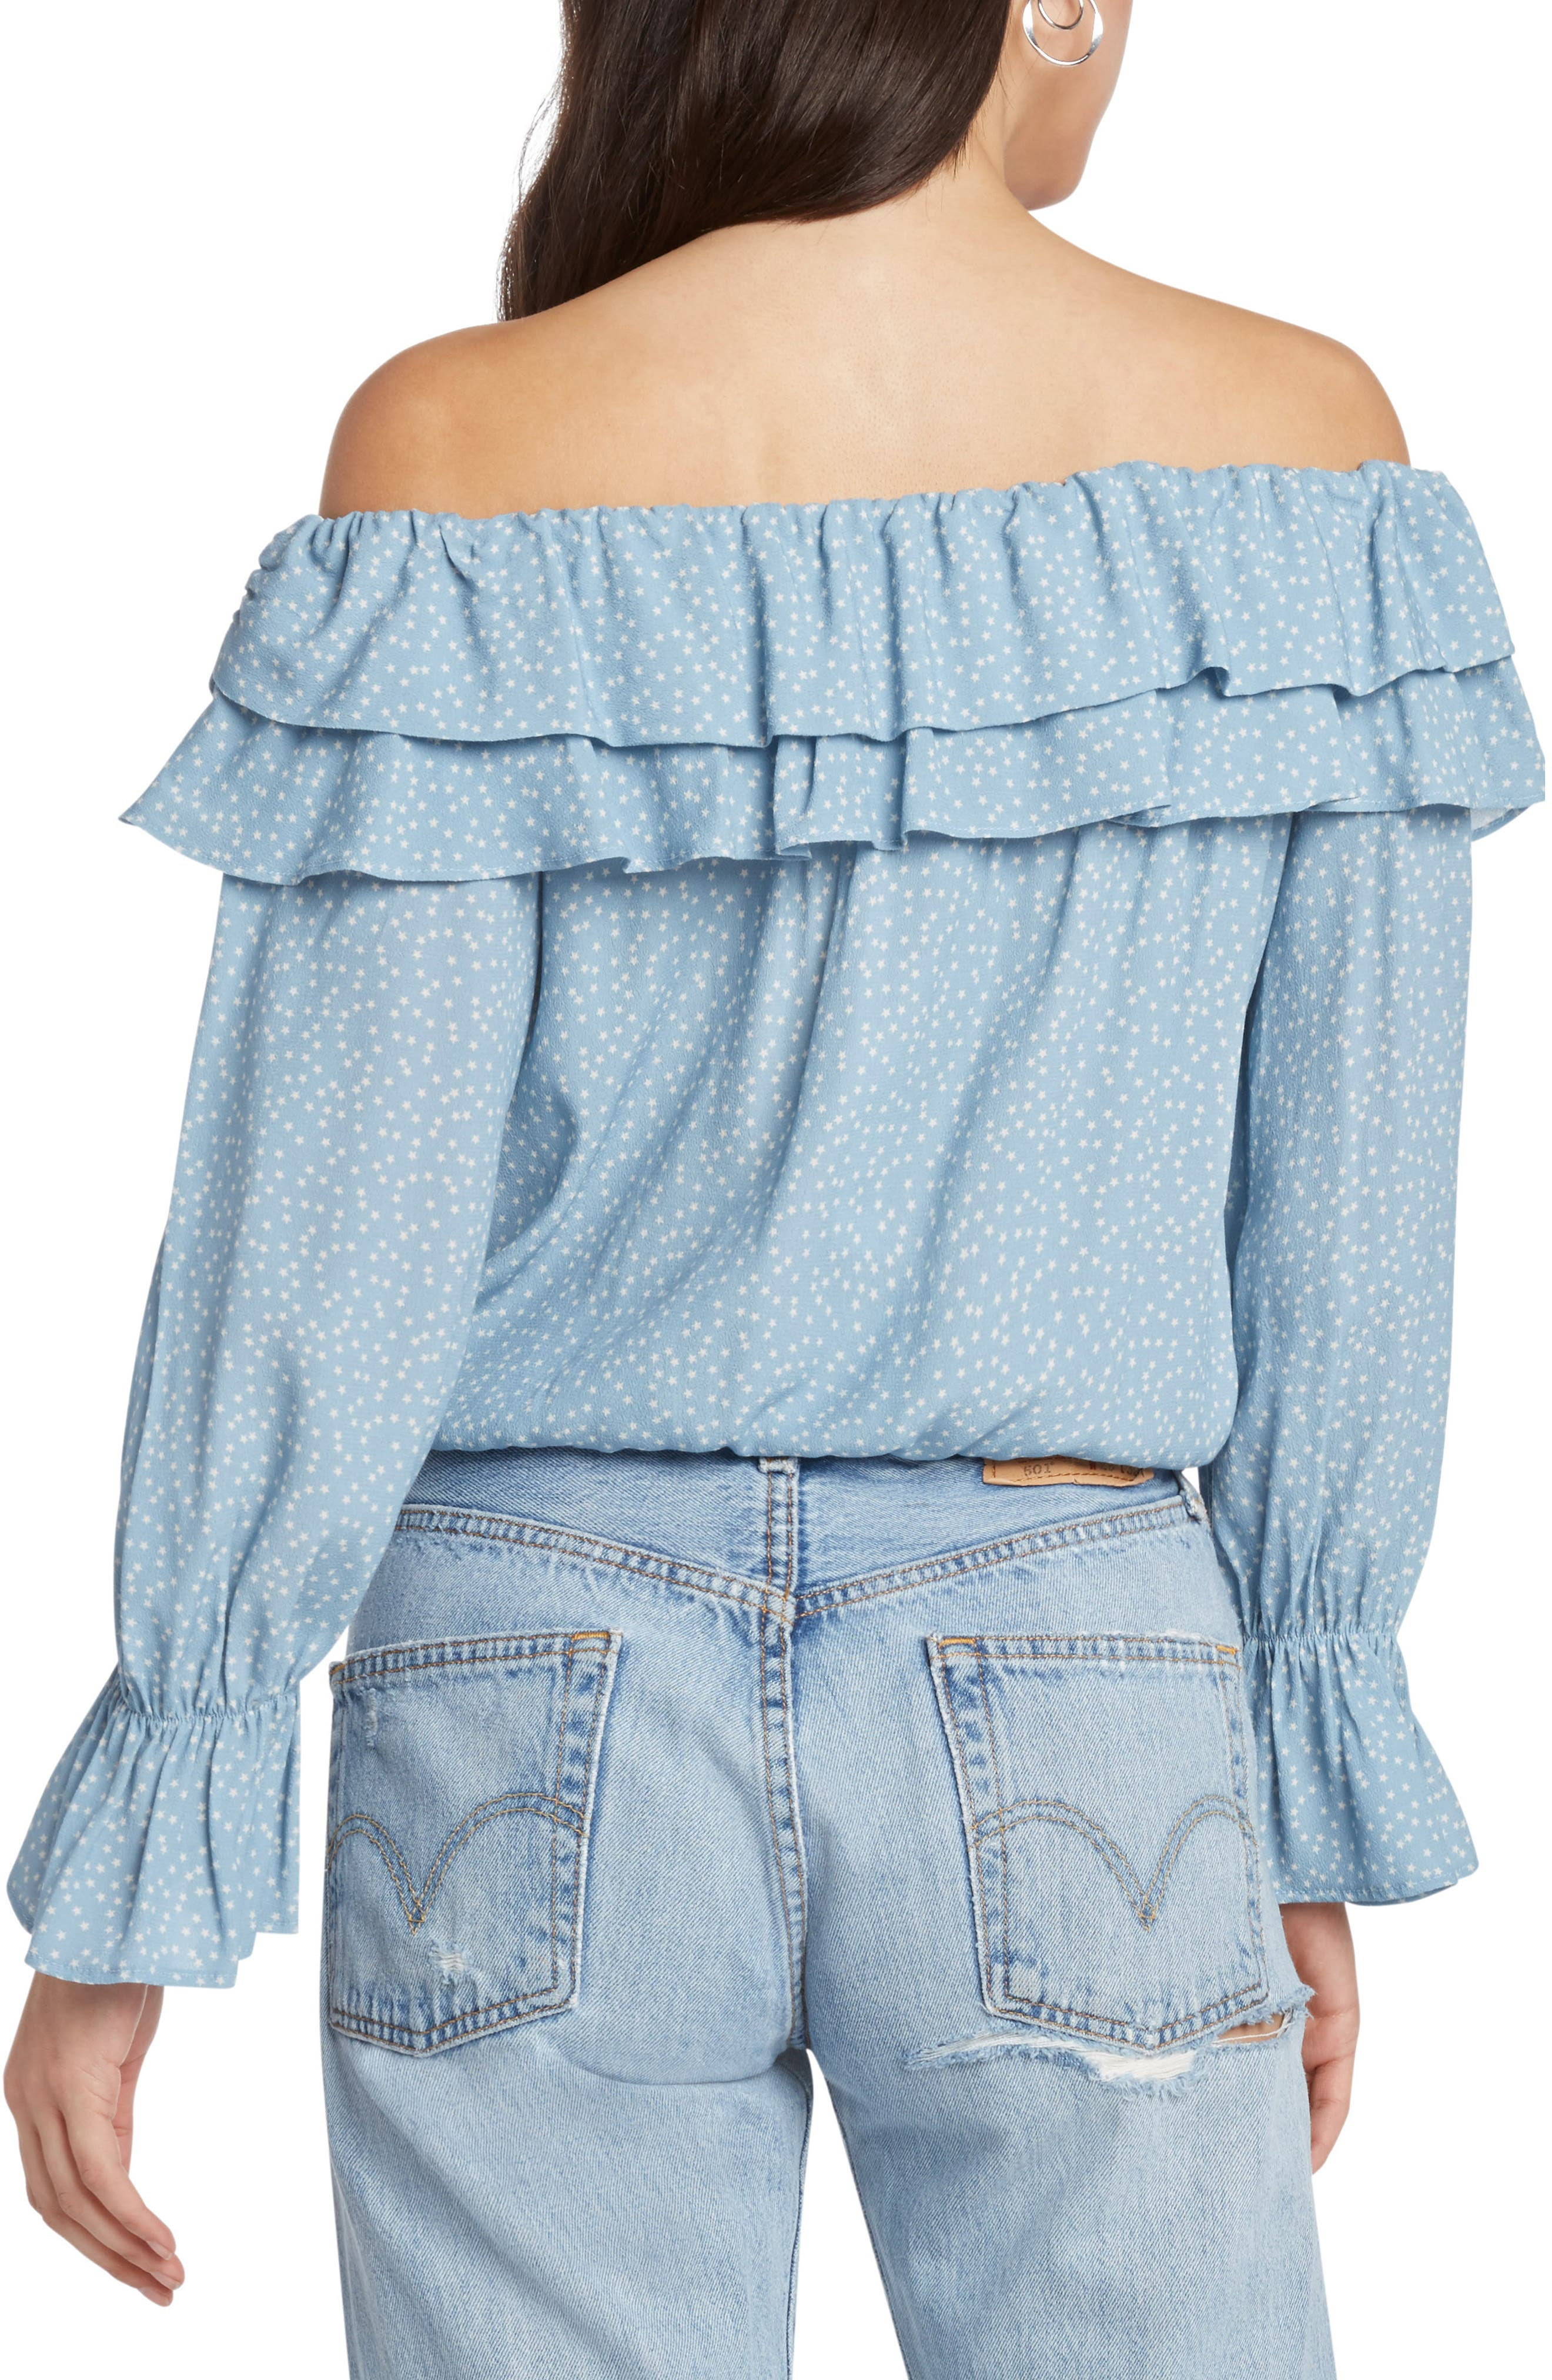 Star Print Off the Shoulder Top,                             Alternate thumbnail 2, color,                             FRENCH BLUE